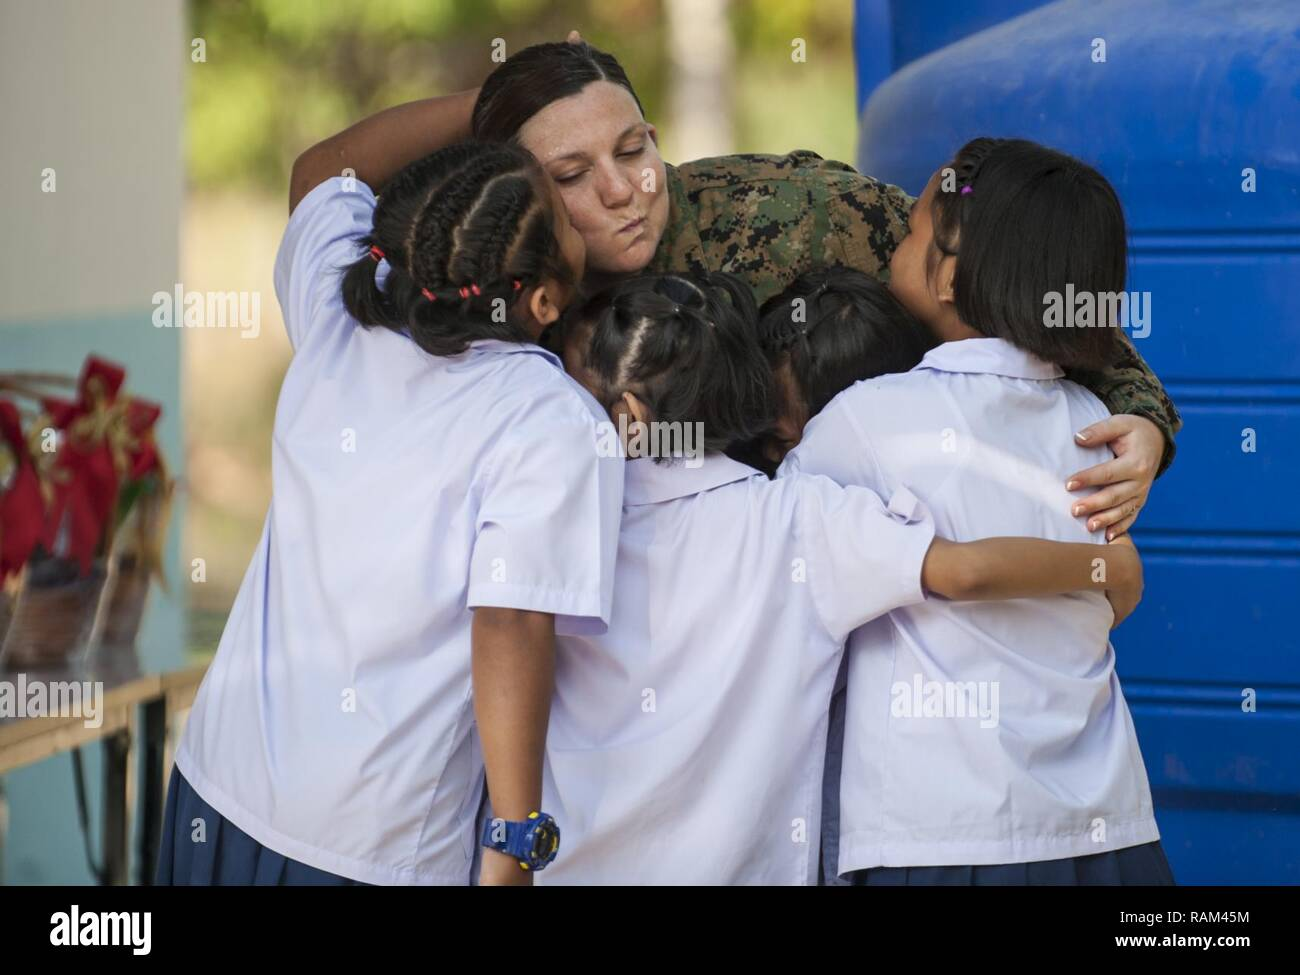 RAYONG PROVINCE, Thailand (Feb. 21, 2017) – Hospital Corpsman 1st Class Samantha Clark, assigned to 1 Marine Expeditionary Force Headquarters Group, bids farewell to Thai students during a dedication ceremony, marking the completion of the Ban Nong Muang school expansion project. The project was a joint effort by the U.S. Naval Mobile Construction Battalion 5, Construction and Developmental Regiment, Sattahip Naval Base and Korean Naval Mobile Construction Battalion 2nd Engineer, part of Cobra Gold 2017. Cobra Gold, in its 36th iteration, is the largest Theater Security Cooperation exercise in Stock Photo